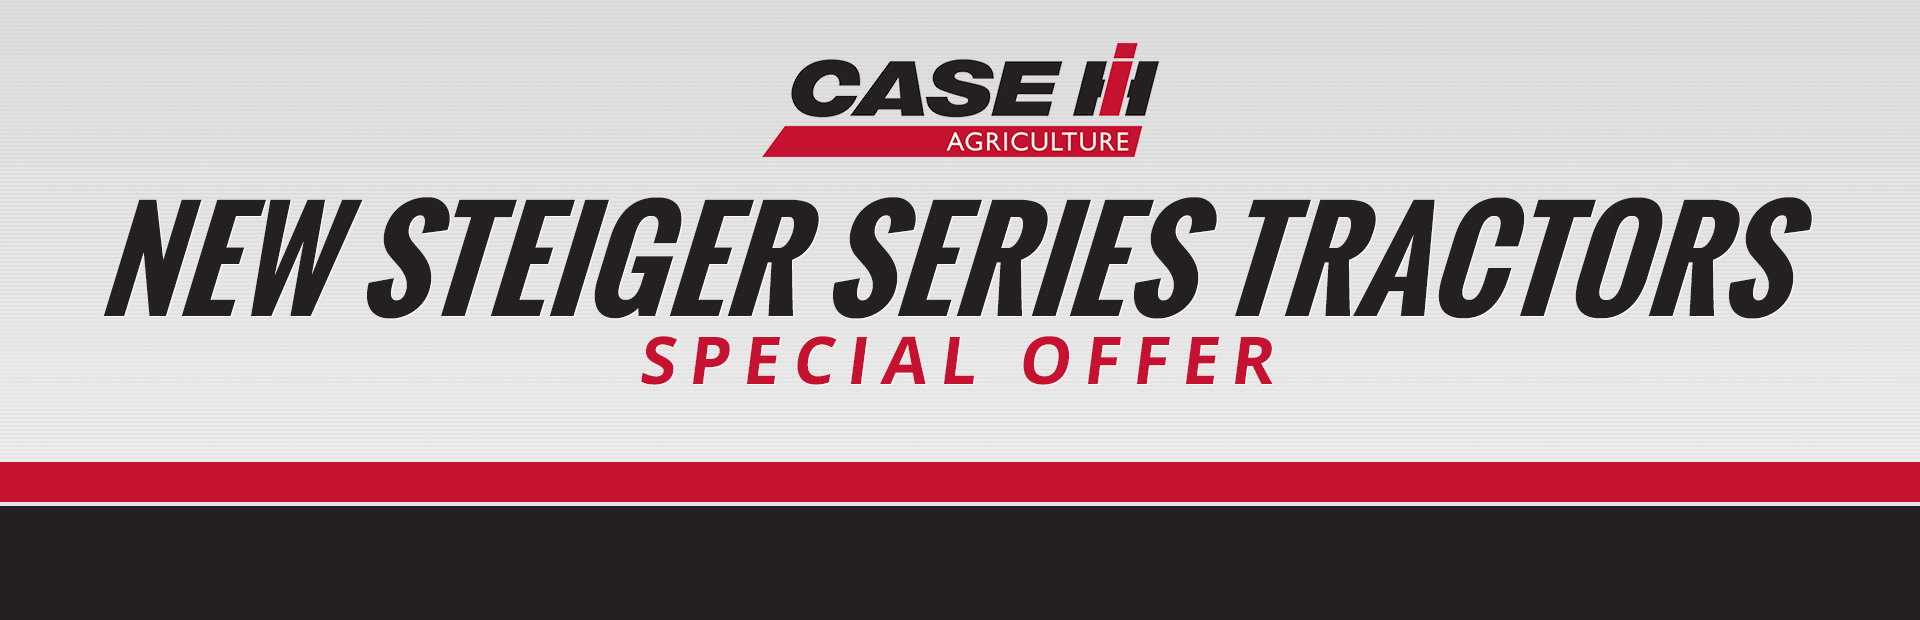 Case IH: New Steiger Series Tractors Special Offer